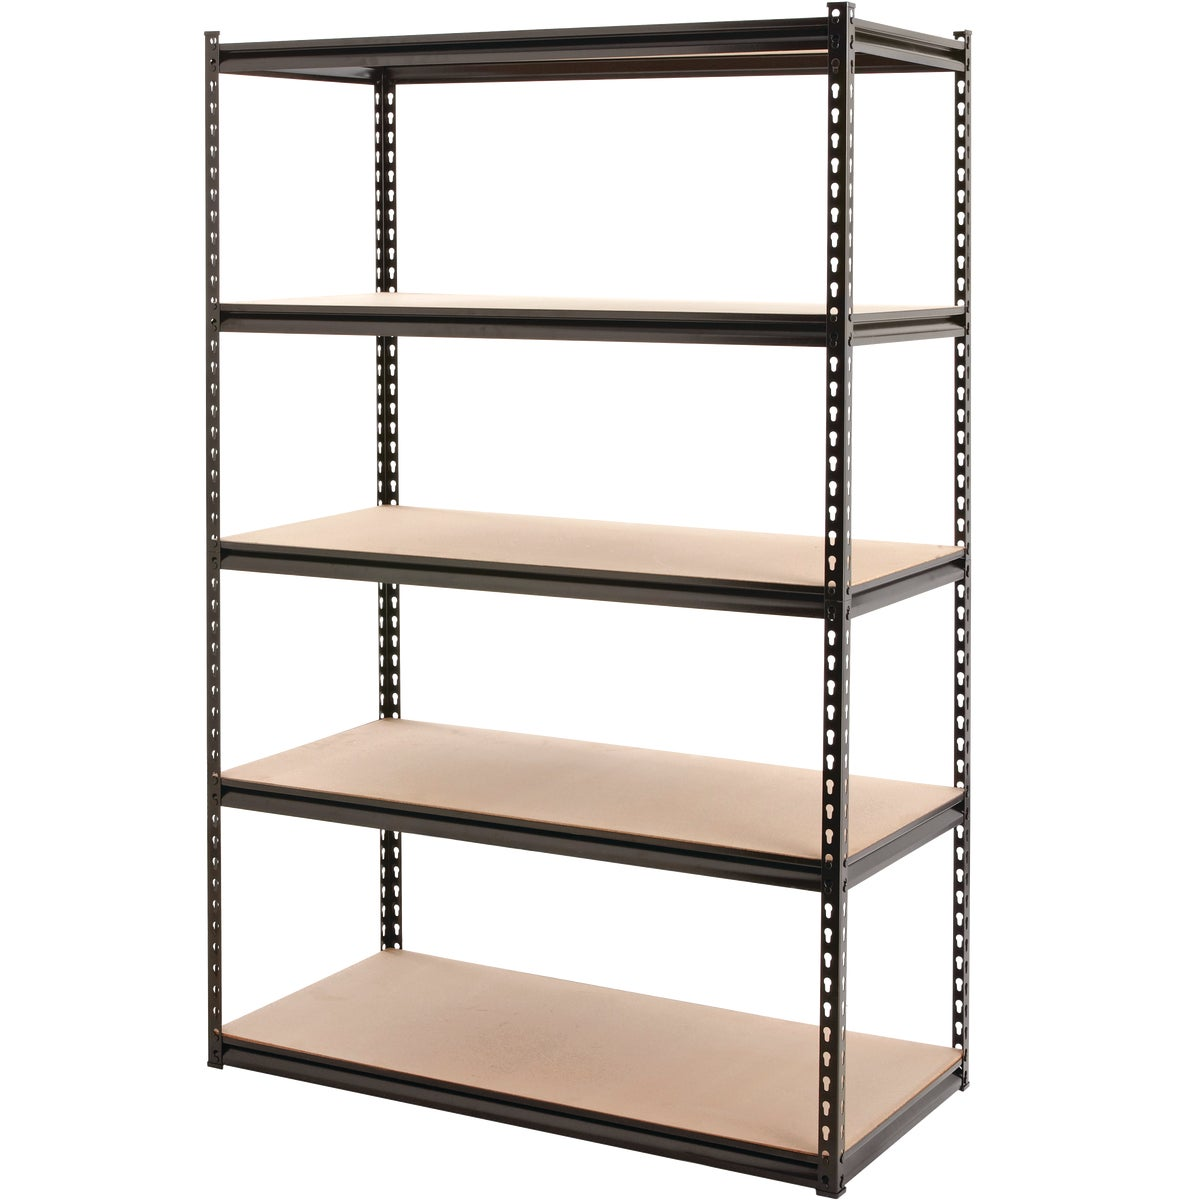 48X24X72 METAL SHELVING